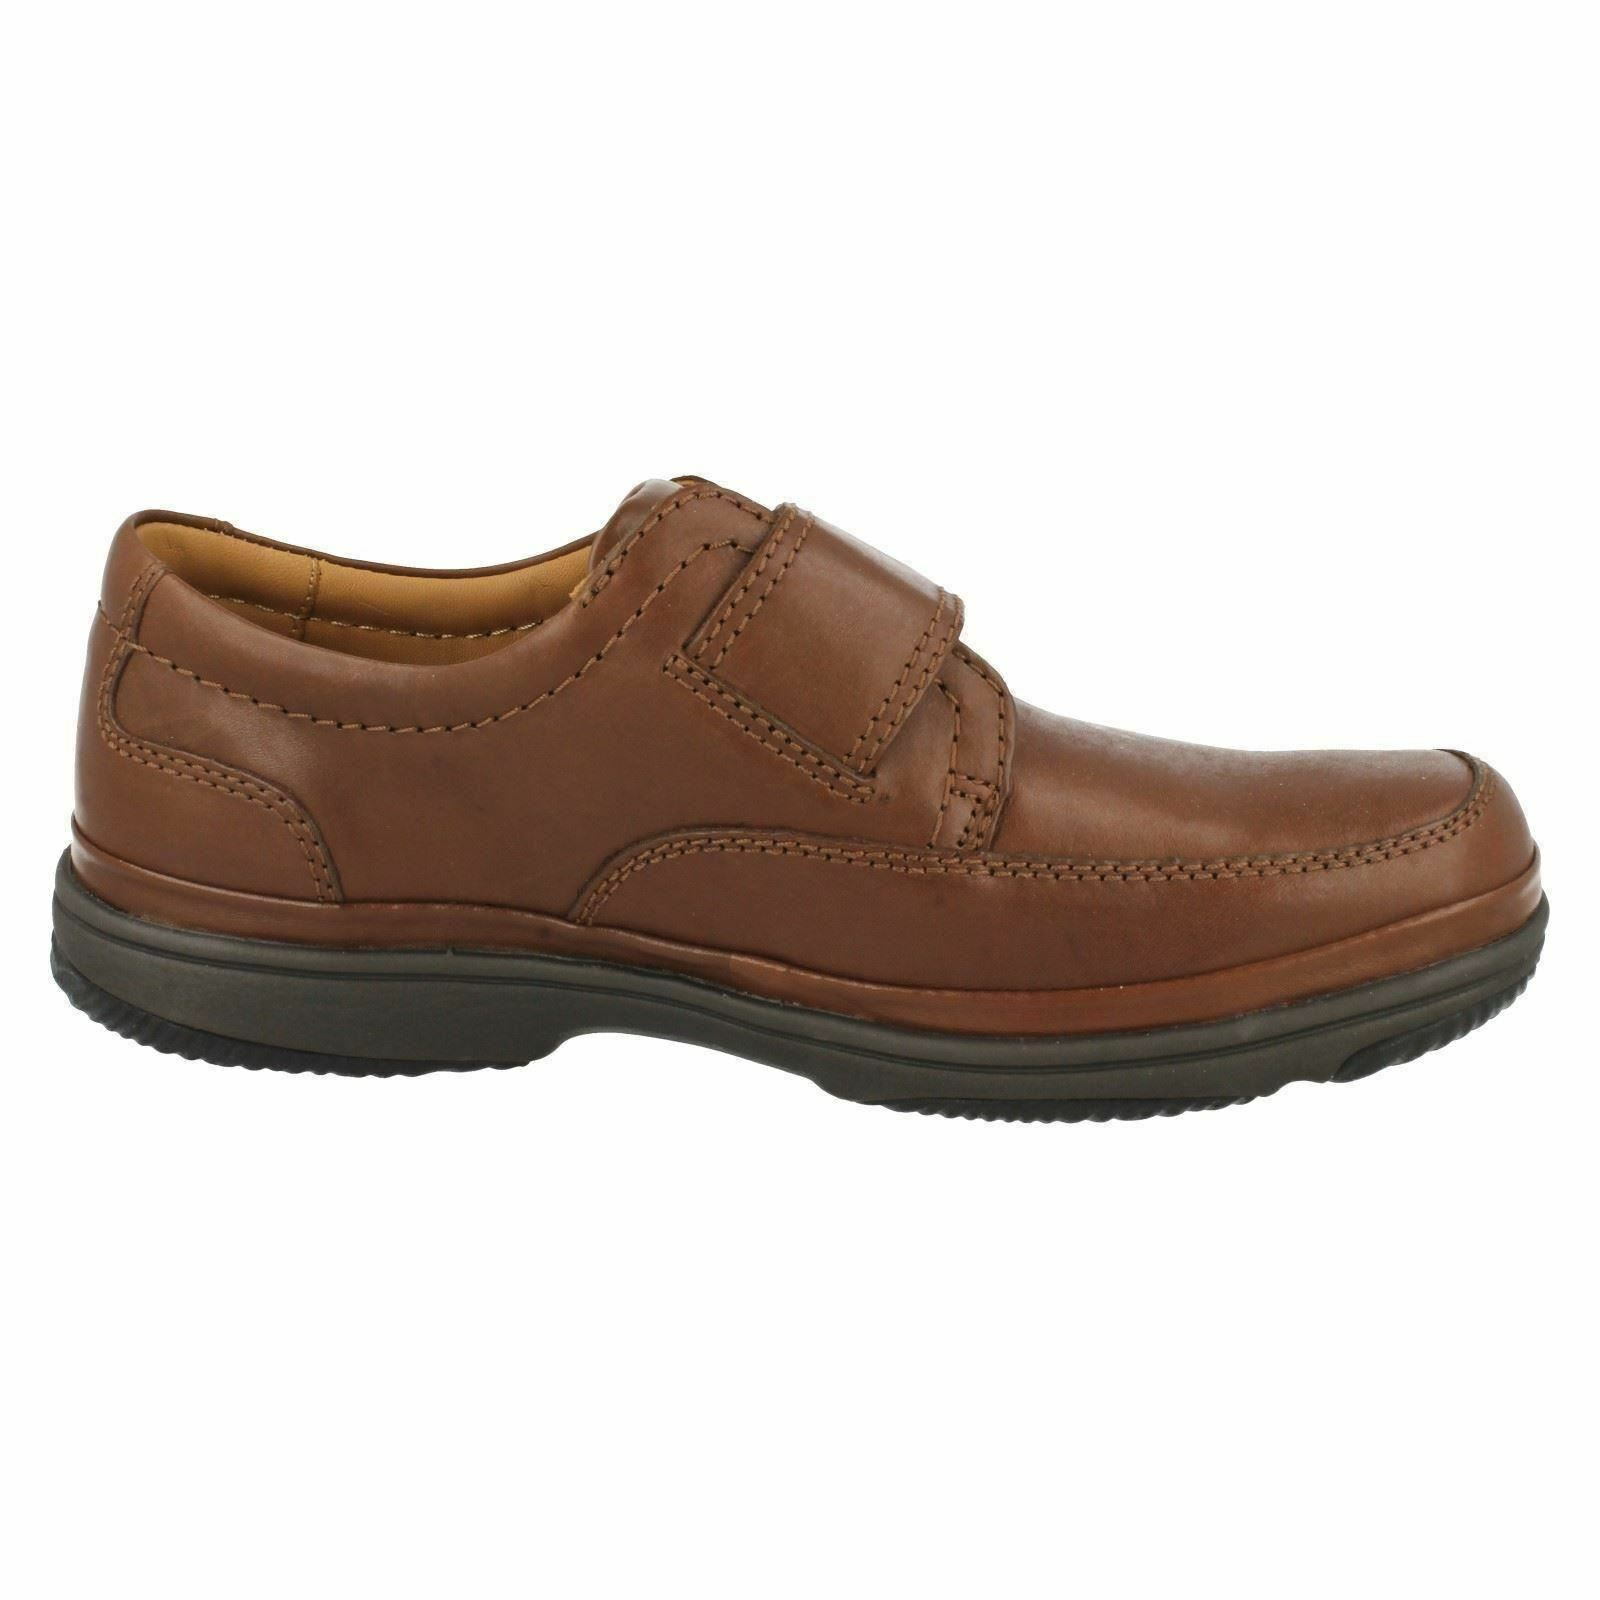 Mens Clarks Swift Turn Brown Leather Rip Tape  Shoes WIDE H Fitting